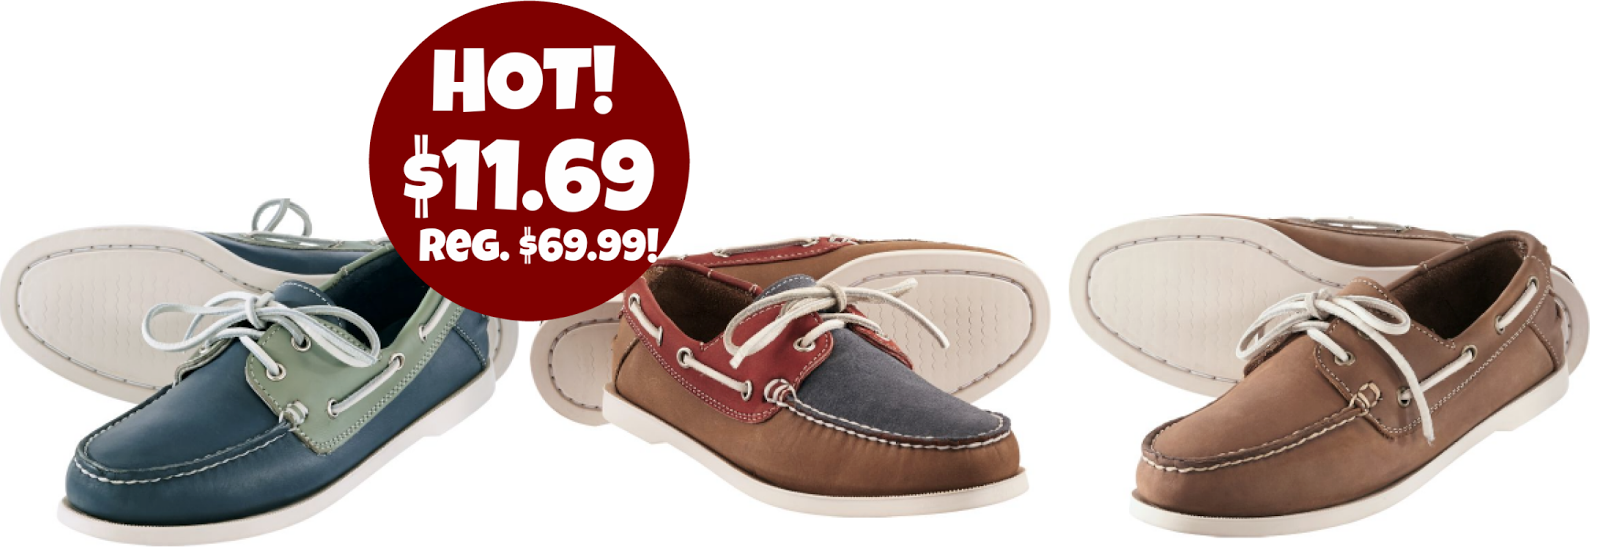 http://www.thebinderladies.com/2014/11/hot-cabelas-womens-leather-boat-shoes.html#.VG0WU4fduyM